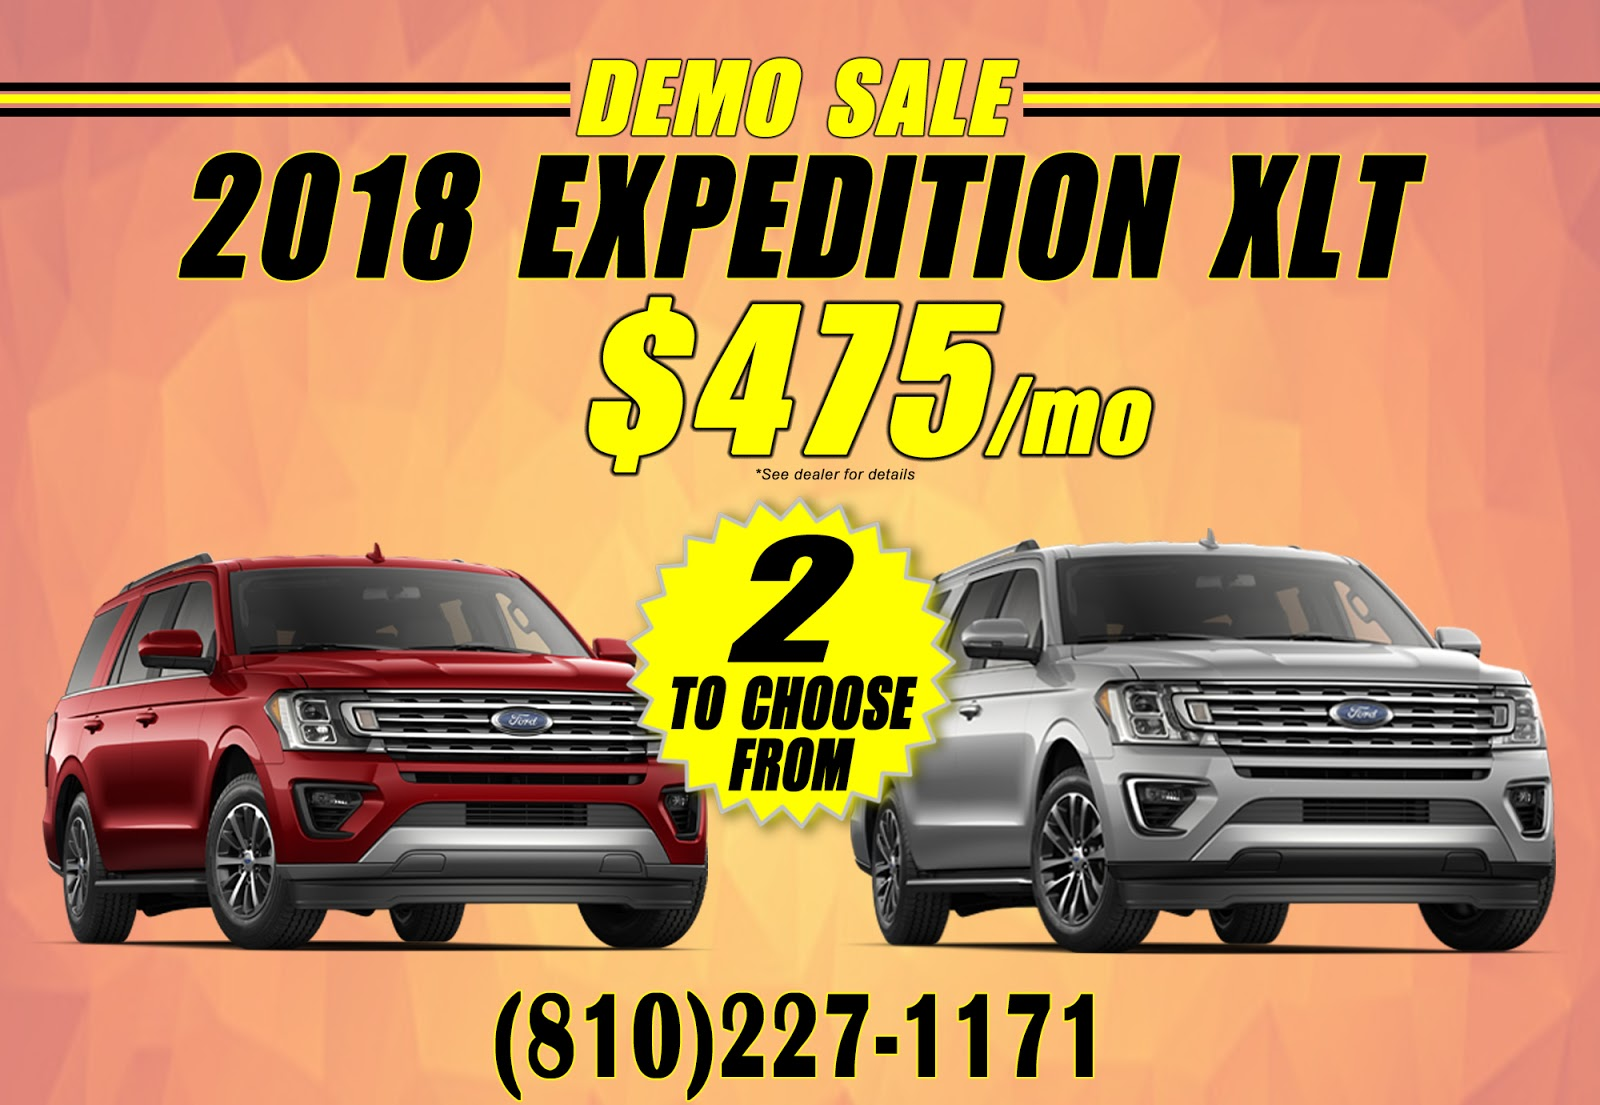 Brighton Ford Lowest Price On The New 2018 Expedition At Brighton Ford